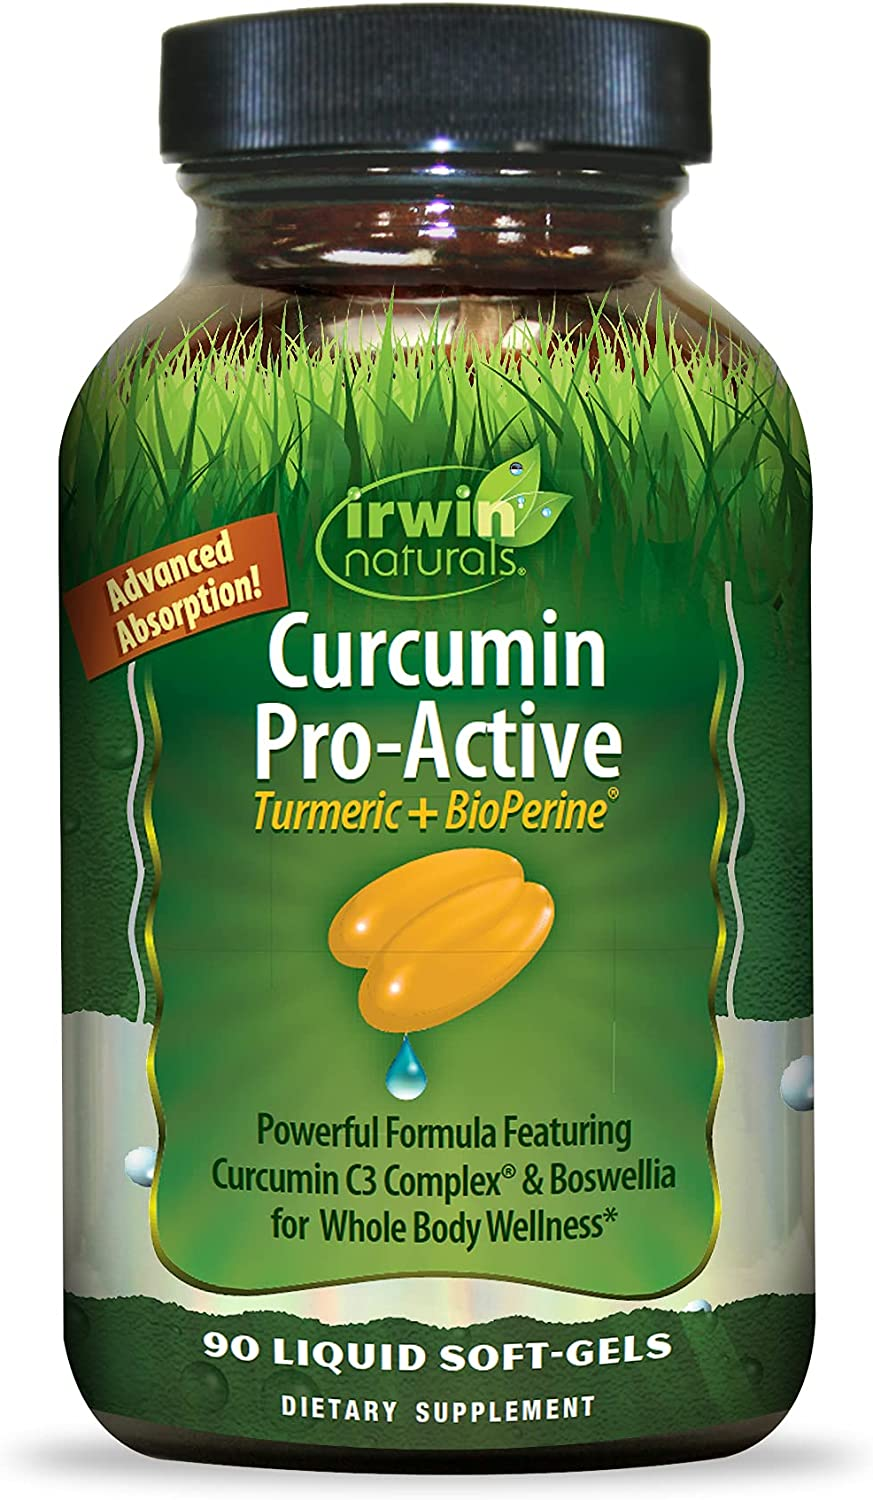 IRWIN NATURALS Curcumin Pro-Active High quality Our shop OFFers the best service BioPerine + Turmeric 90ct